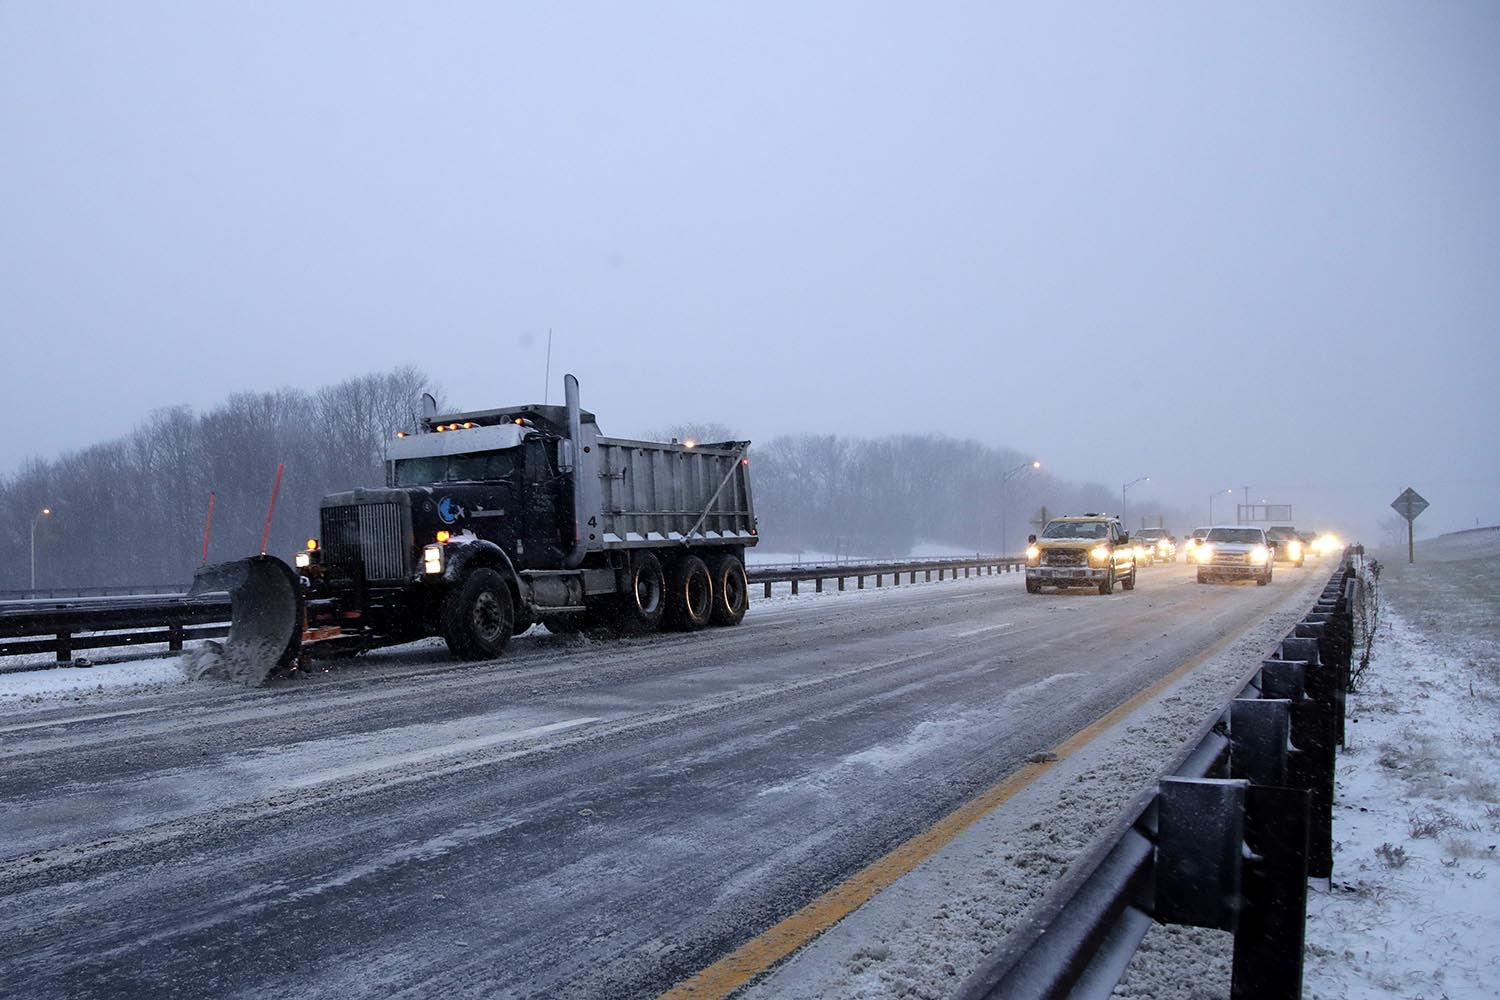 <div class='meta'><div class='origin-logo' data-origin='AP'></div><span class='caption-text' data-credit='AP Photo/Julio Cortez'>Traffic follows behind a plow clearing snow off the Garden State Parkway during a snowstorm, Thursday, Jan. 4, 2018, in South Amboy, N.J.</span></div>